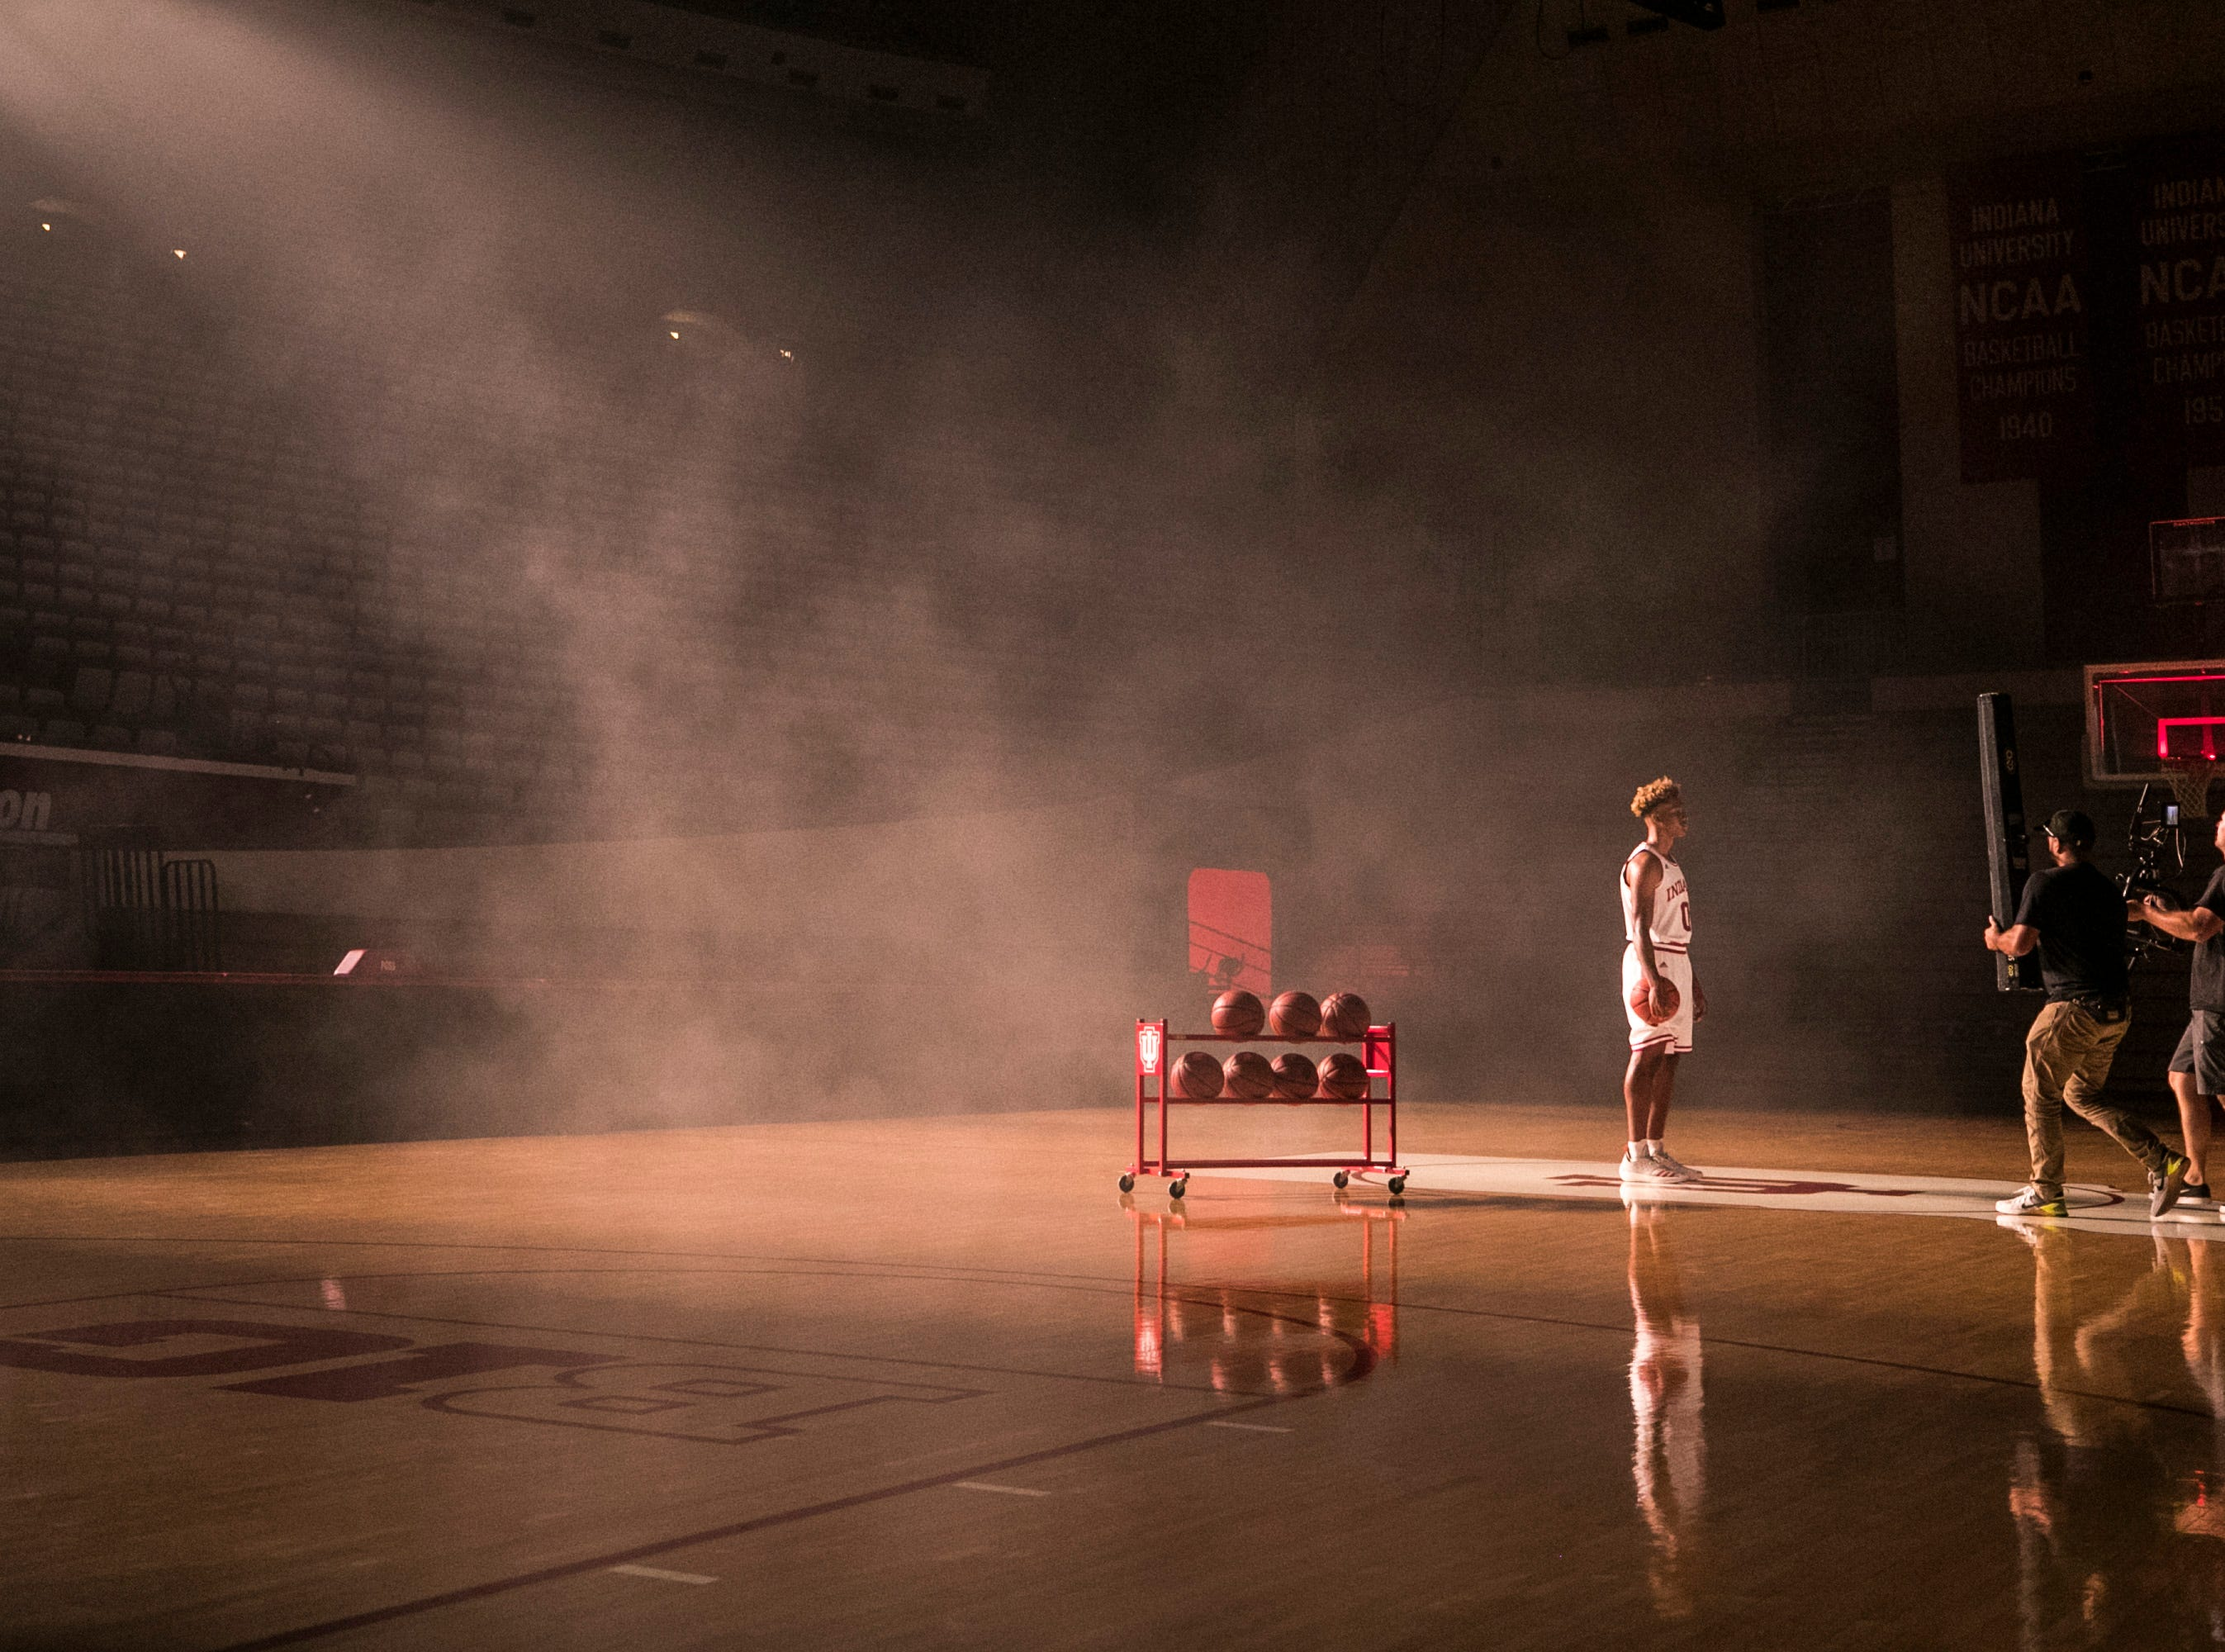 New Albany native Romeo Langford was filmed on the Indiana court during media day at Assembly Hall Wednesday afternoon. Coach Archie Miller says Langford's athleticism reminded him of Randy Moss and quickness like Usain Bolt. There's a lot of Hoosier hopes riding on the shoulders of the highly touted freshman. Sept. 26, 2018